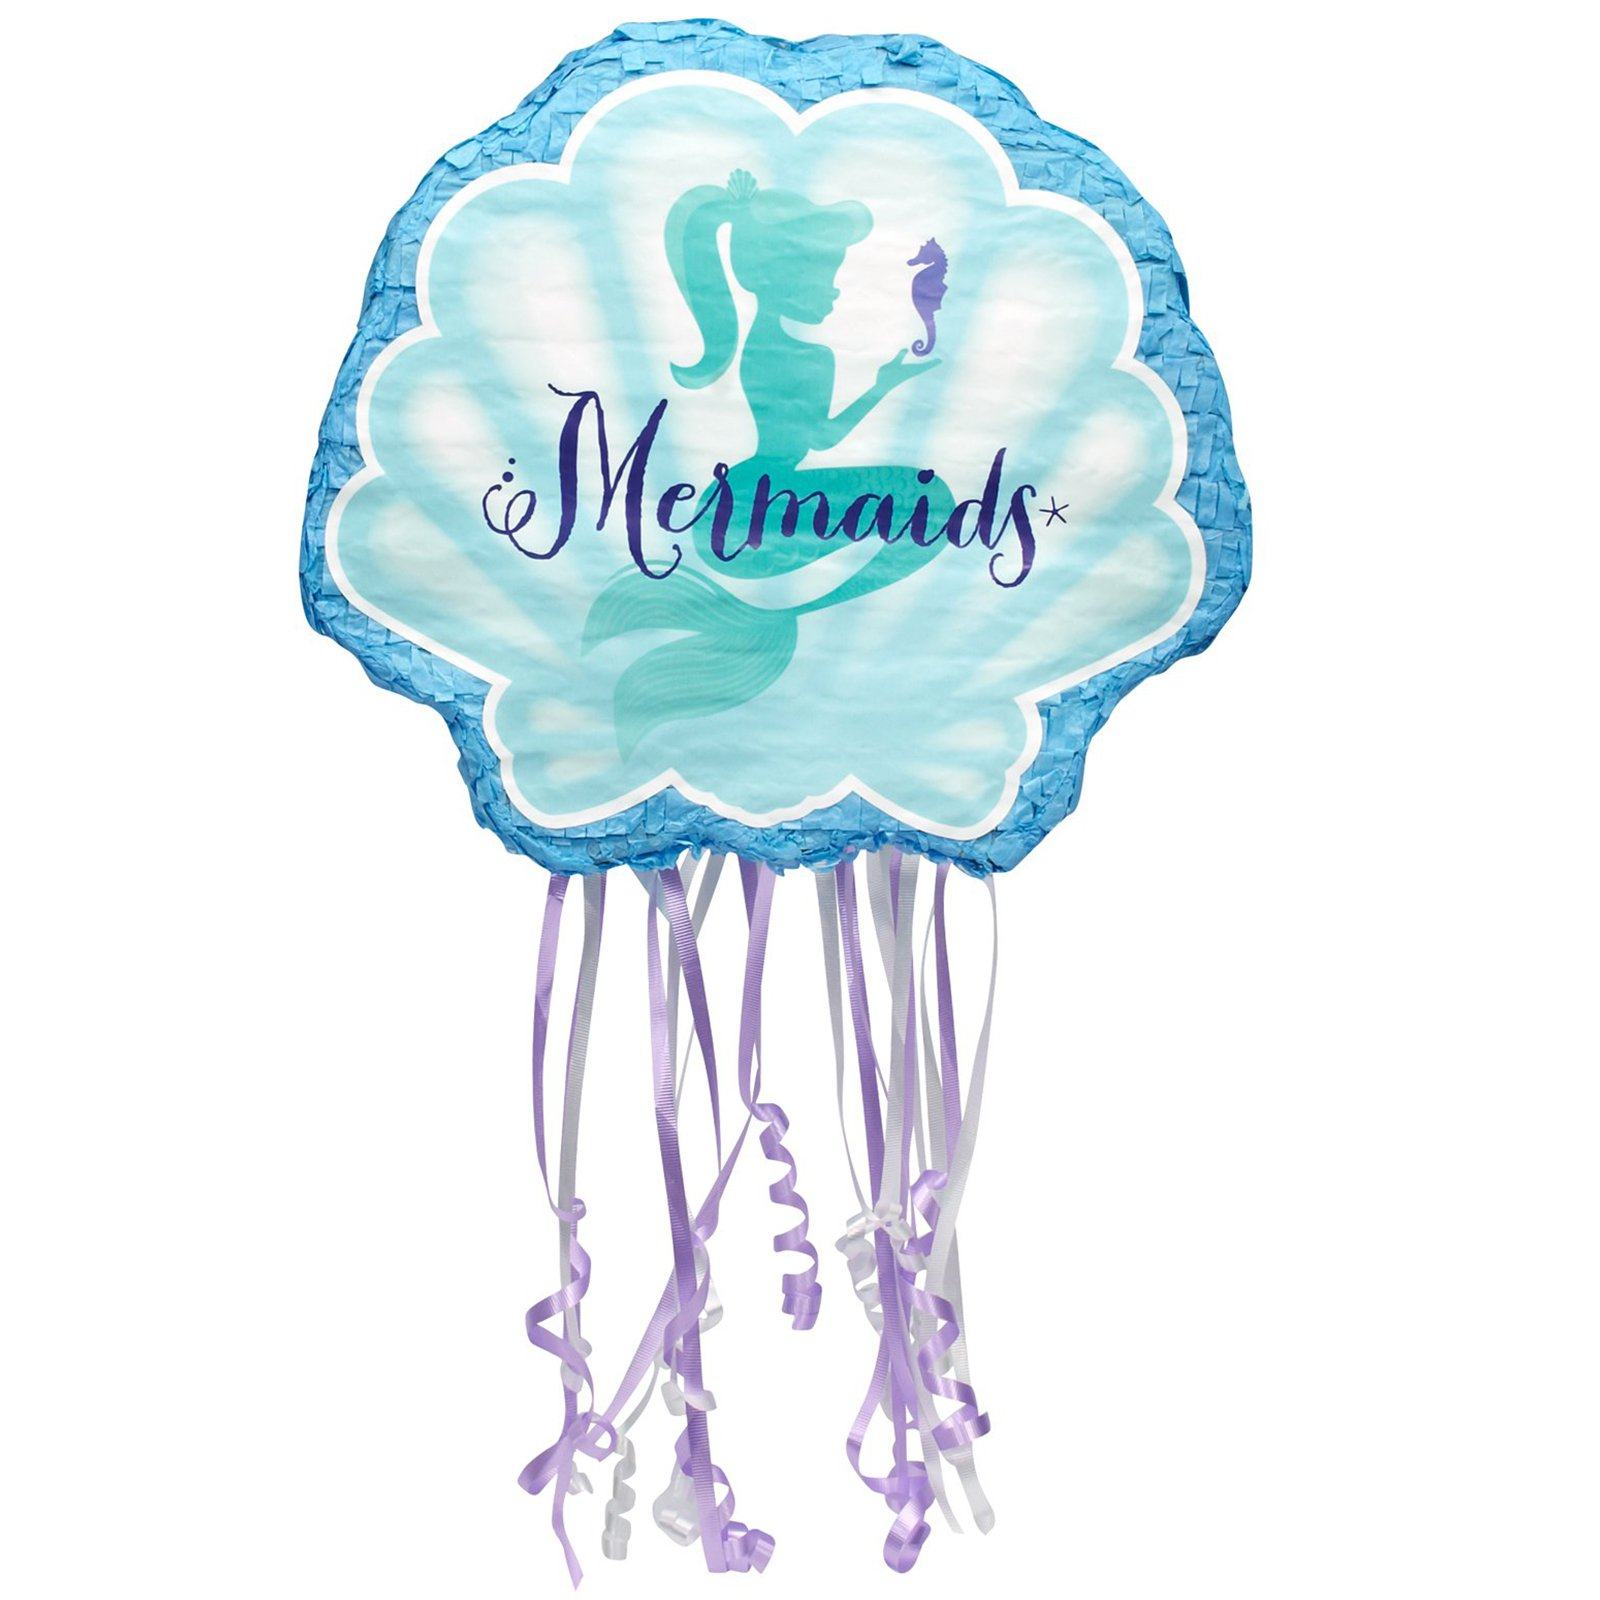 Birthday Express Mermaids Under The Sea Party Supplies - Pull String Pinata by Birthday Express